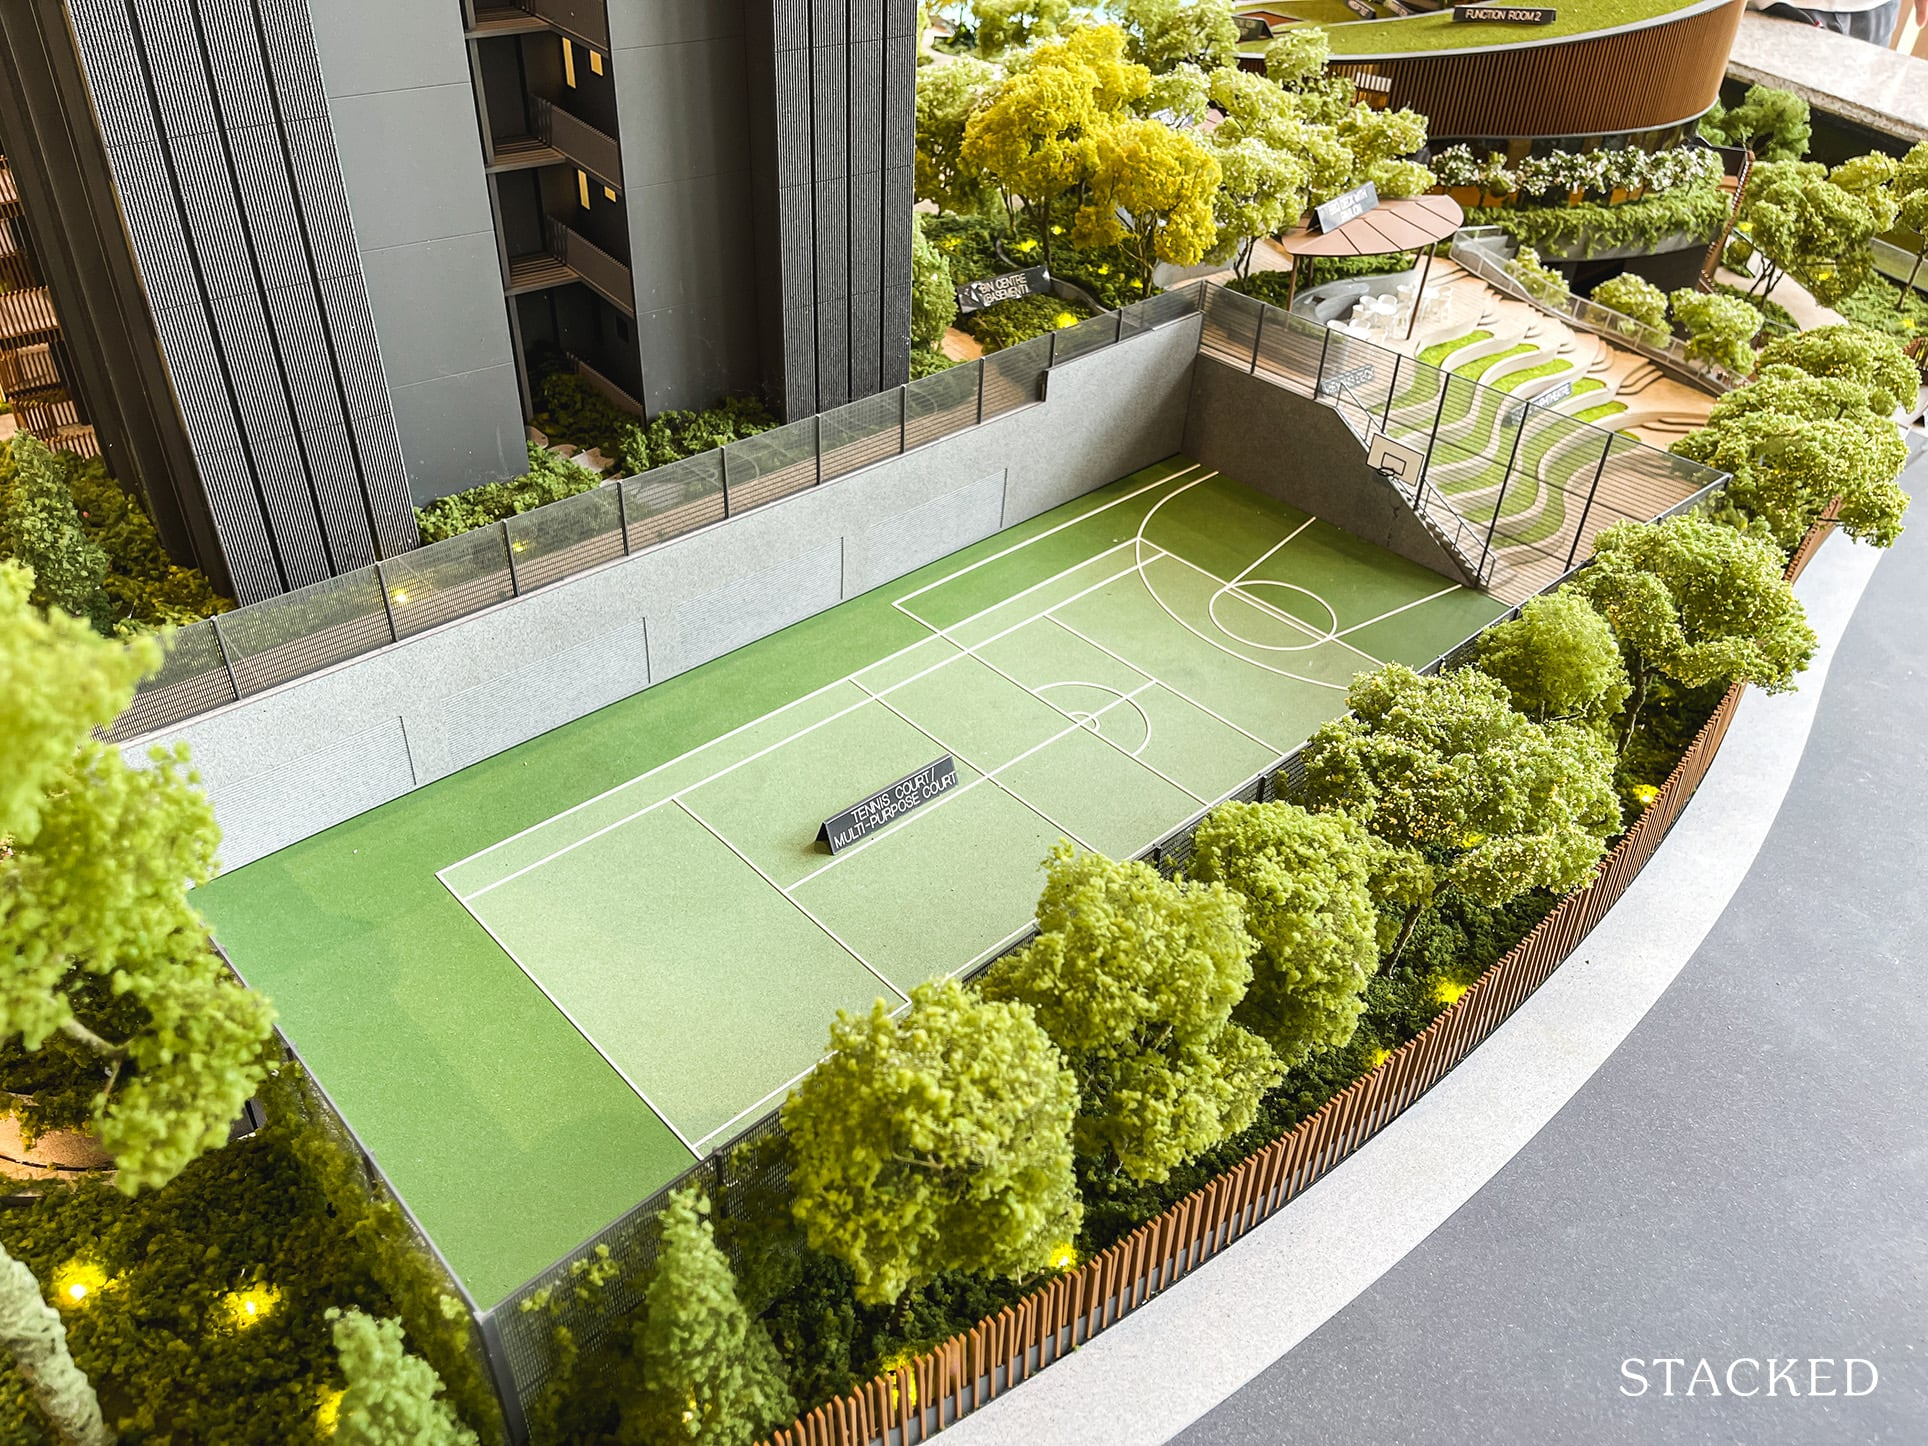 ki residences tennis court